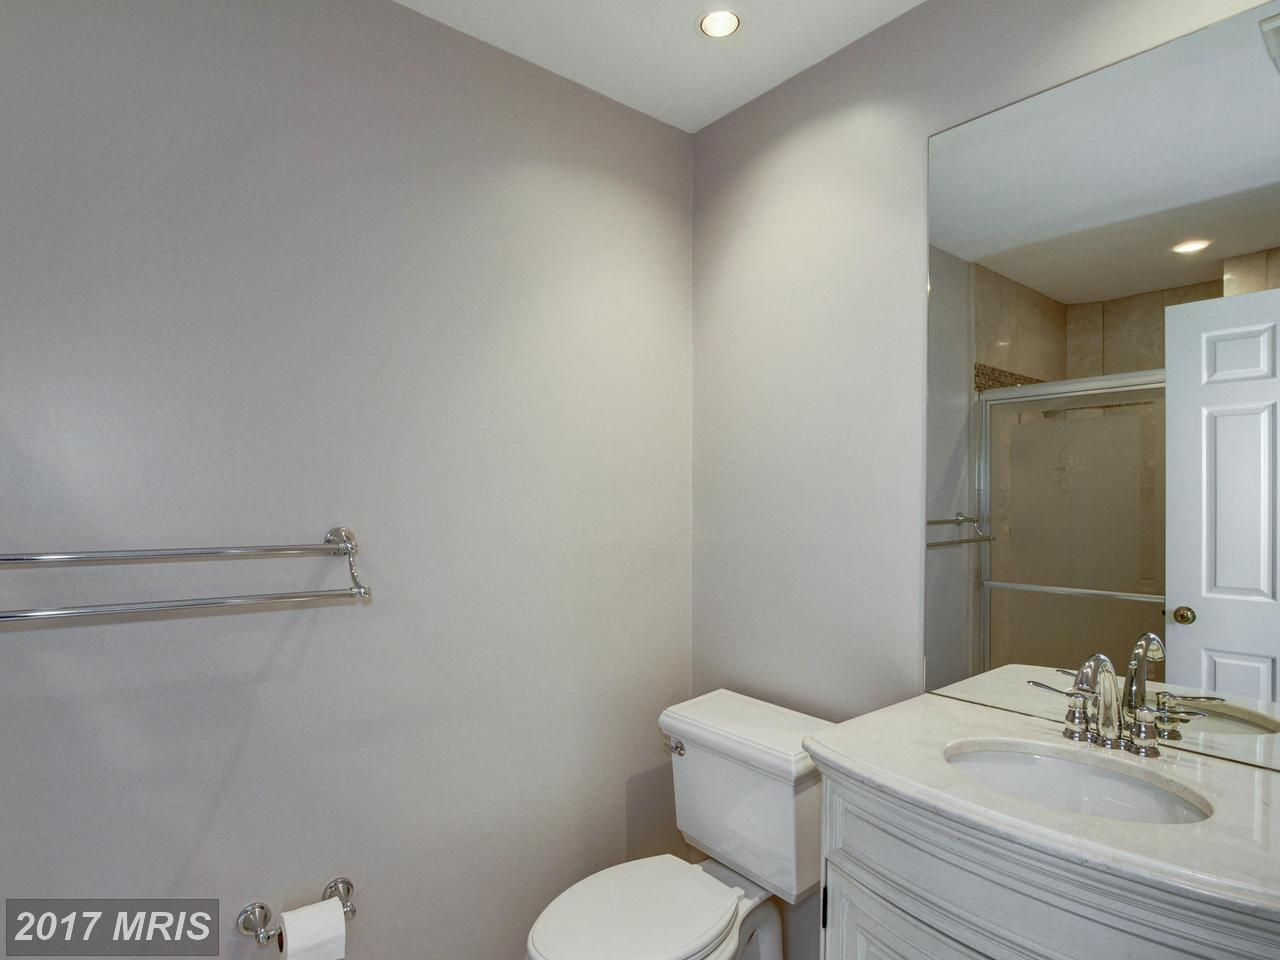 Additional photo for property listing at Detached, International - WASHINGTON, DC 4662 CHARLESTON TER NW Washington, Columbia Bölgesi,20007 Amerika Birleşik Devletleri